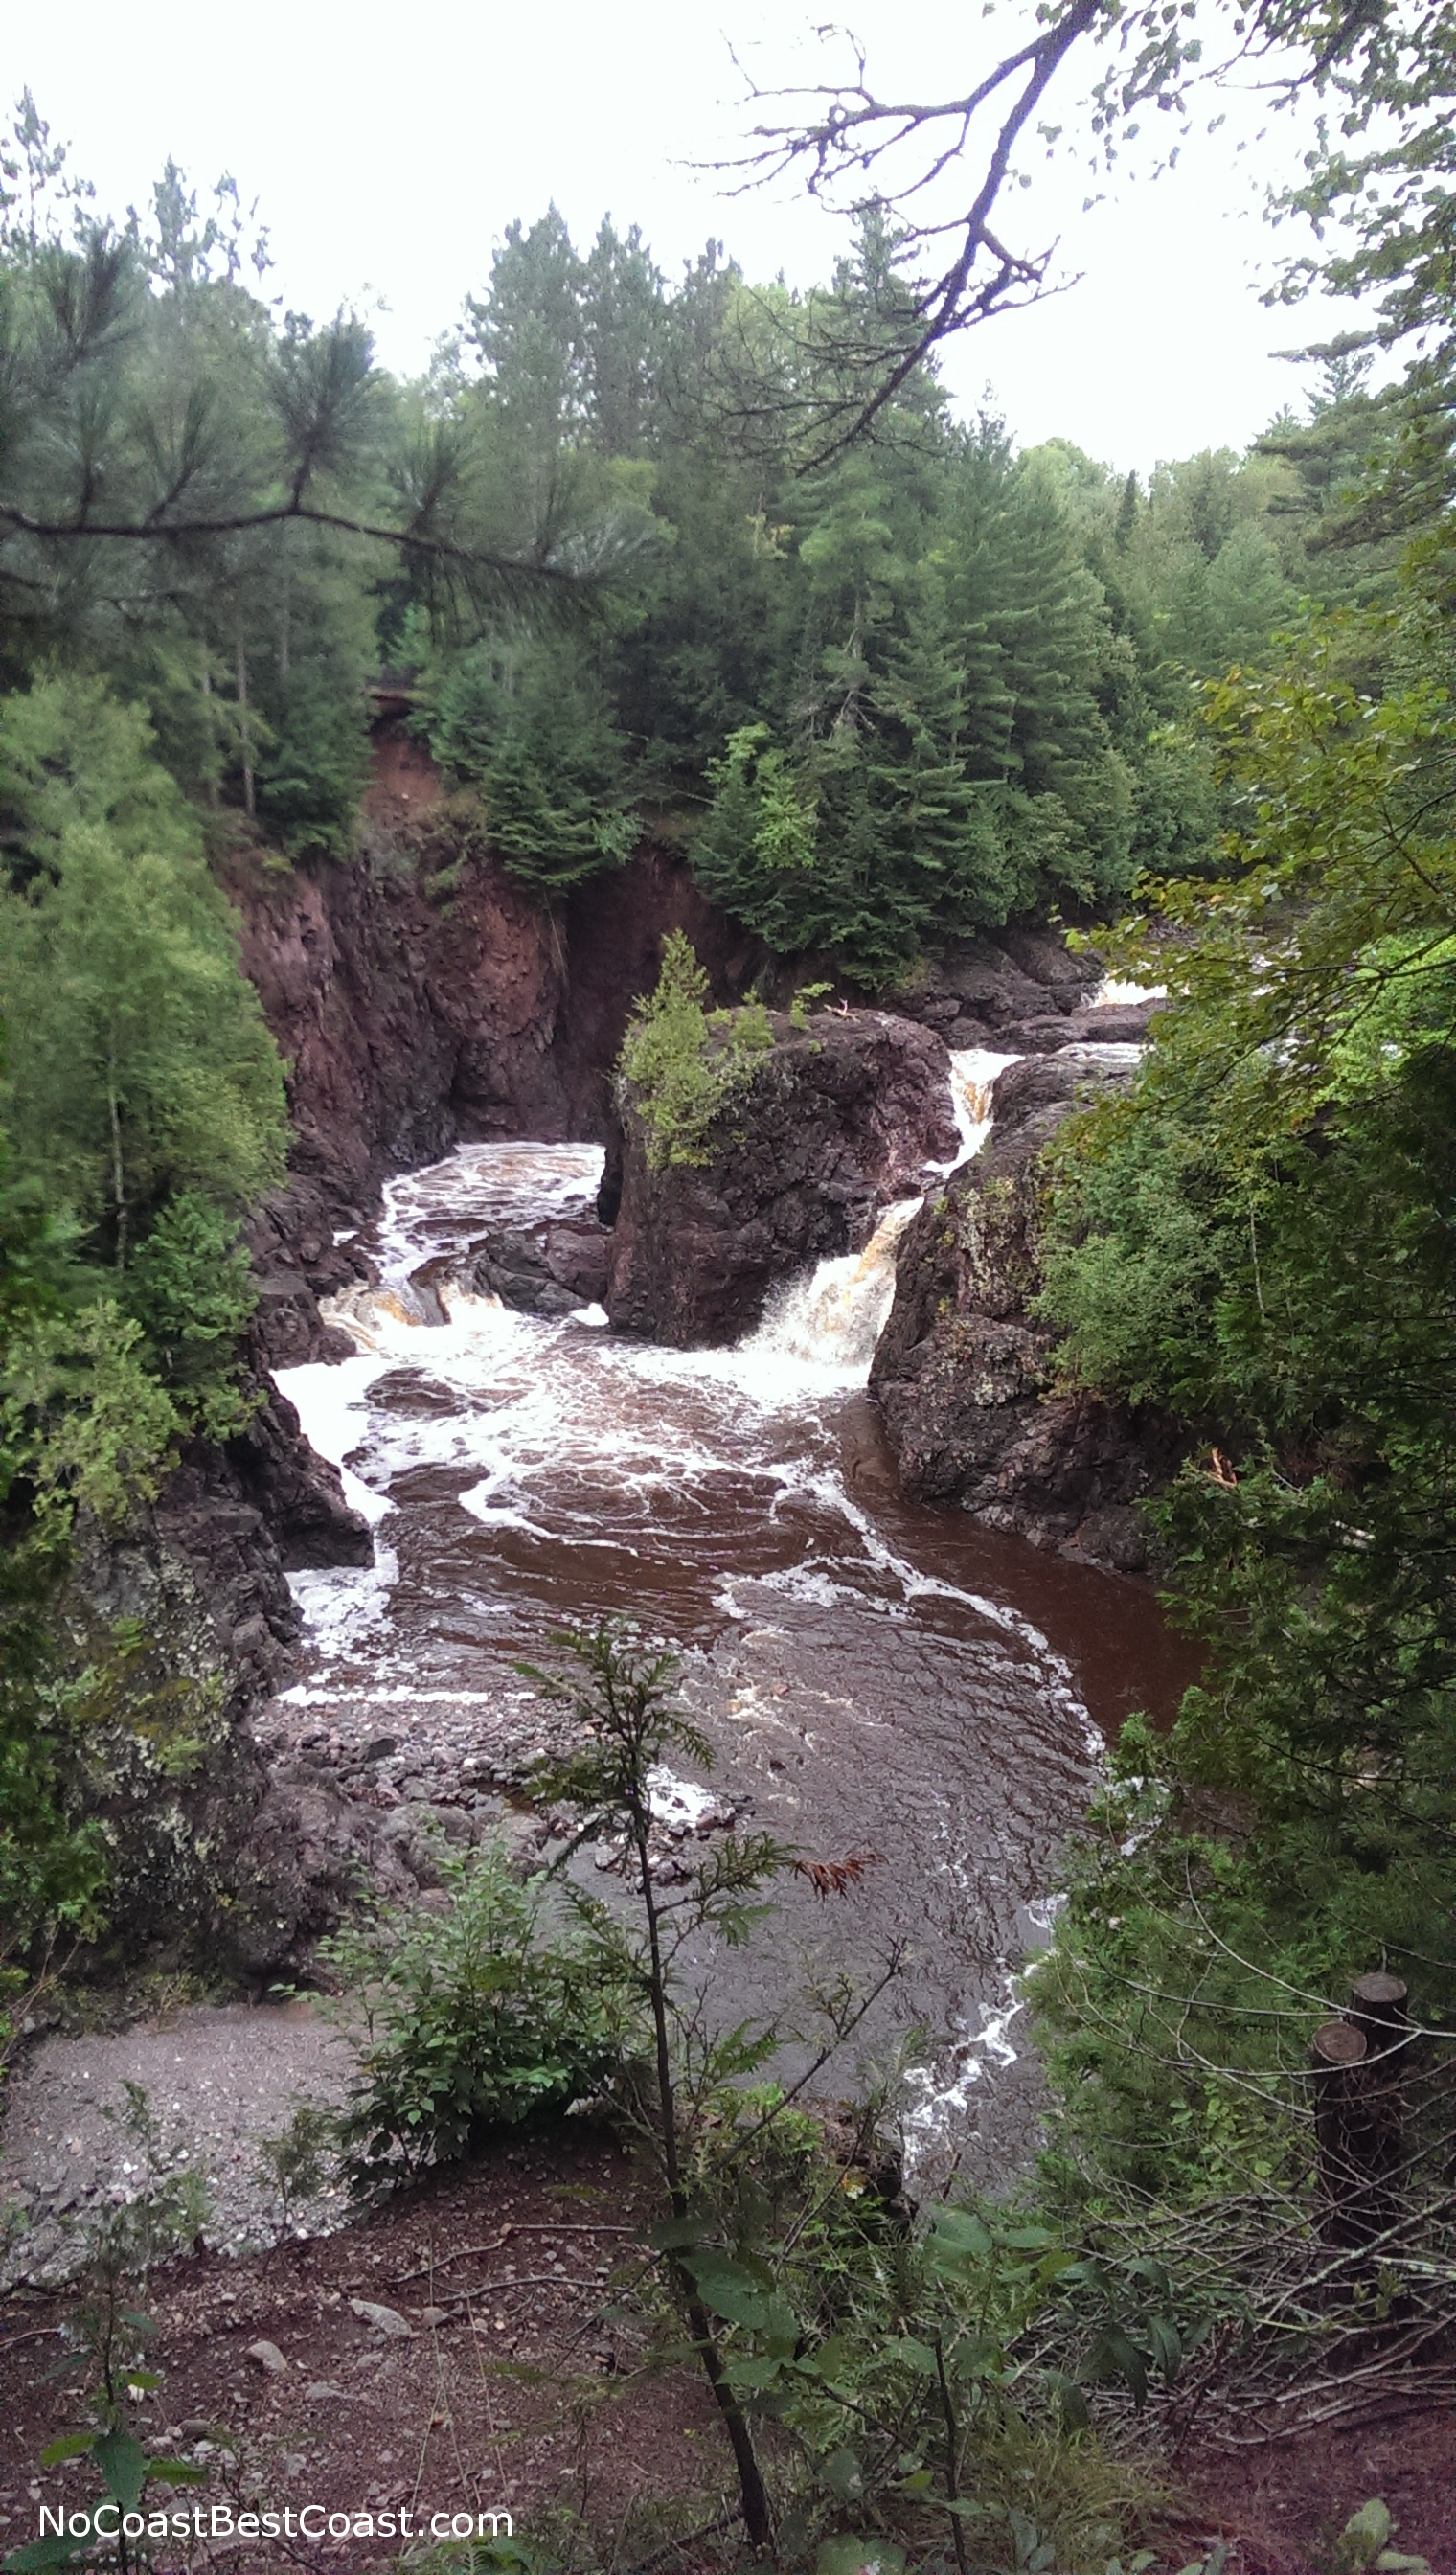 The powerful Brownstone Falls raging through the gorge